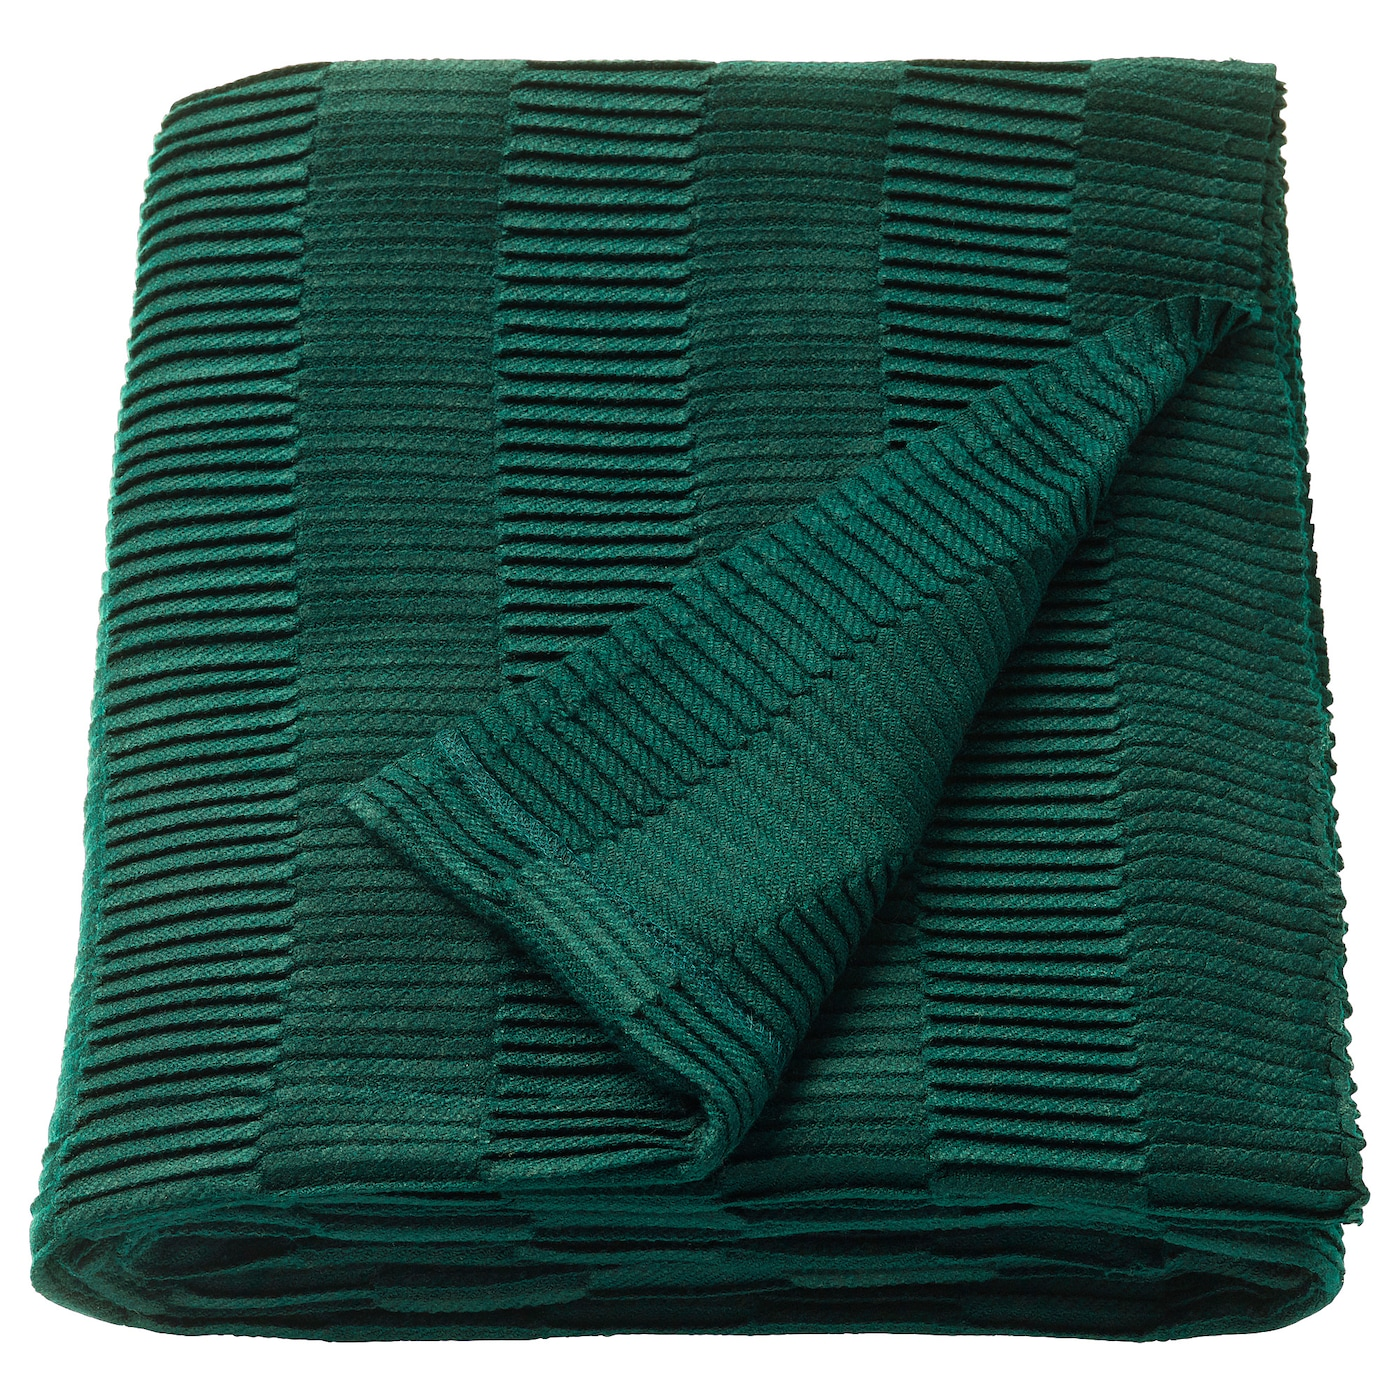 Home Décor Nautical Green And White Striped Cotton Blanket With Green Tassels Home & Garden